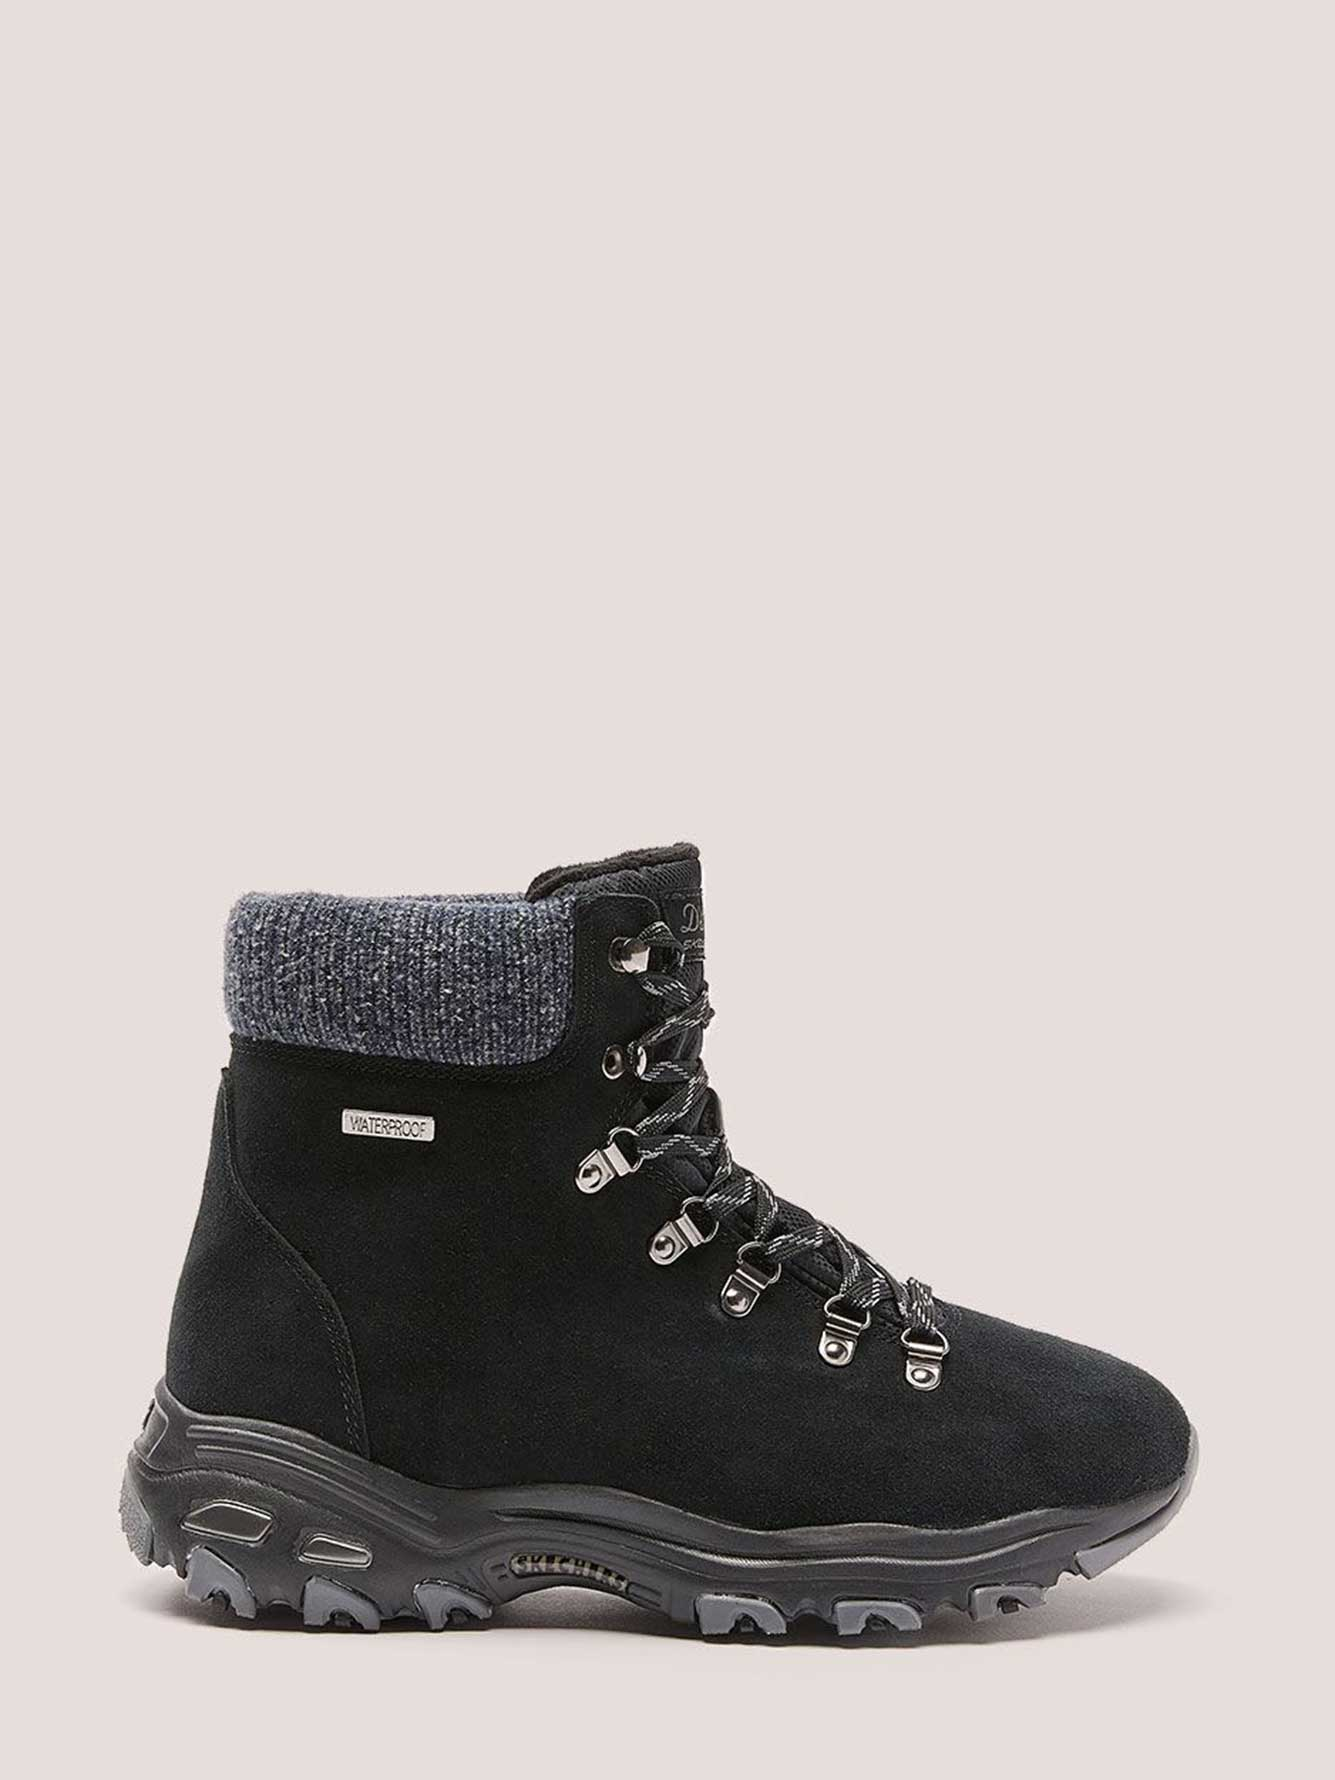 Wide Width Lace-Up Bootie with Webbing - Skechers